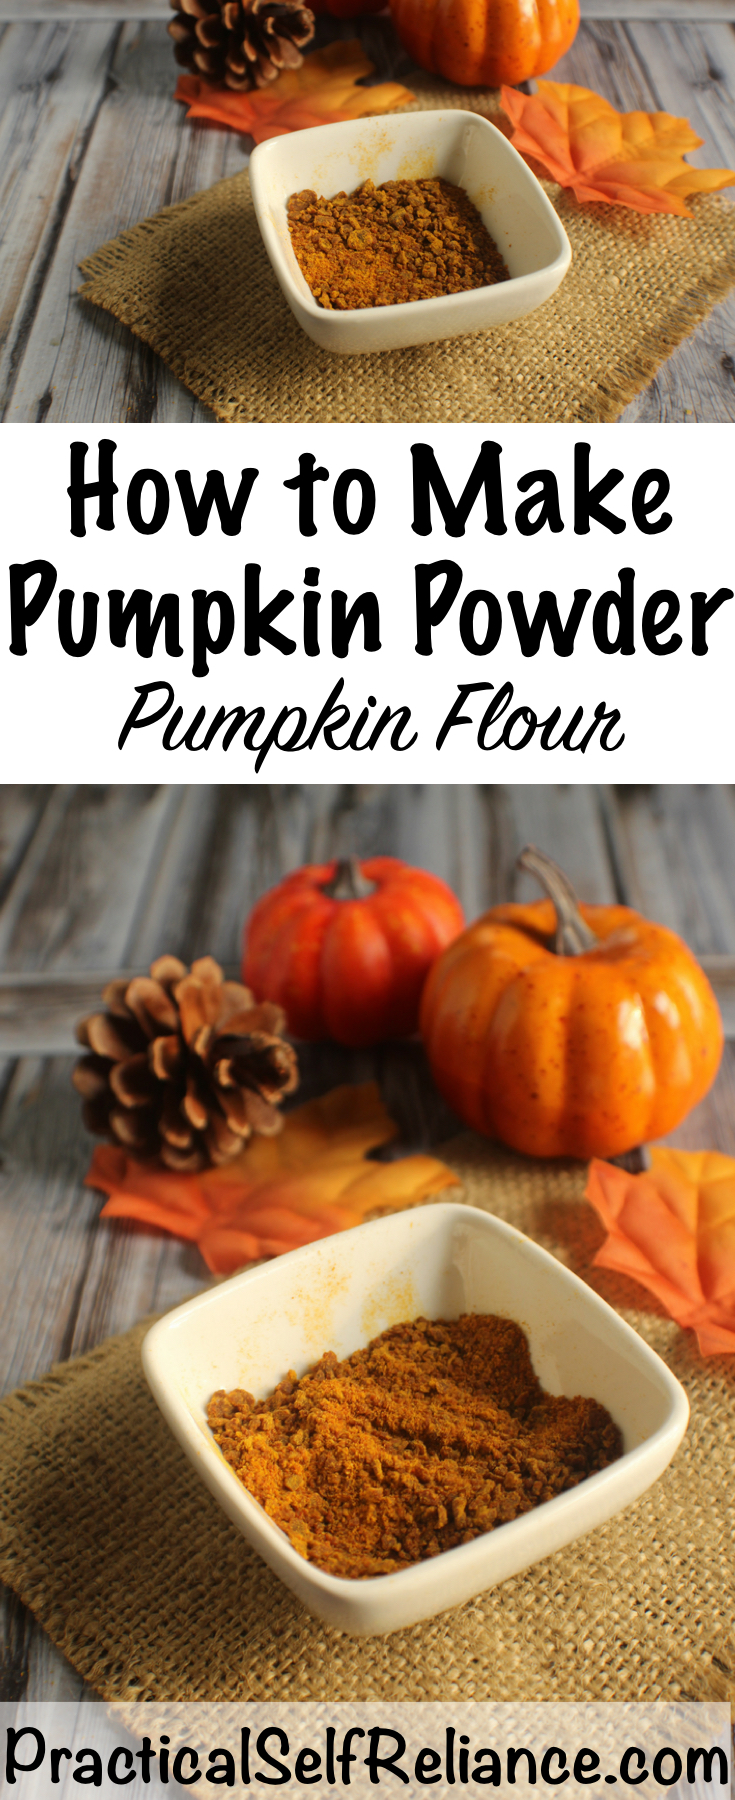 How to Make Pumpkin Powder (Pumpkin Flour) ~ Dehydrating Pumpkin Puree